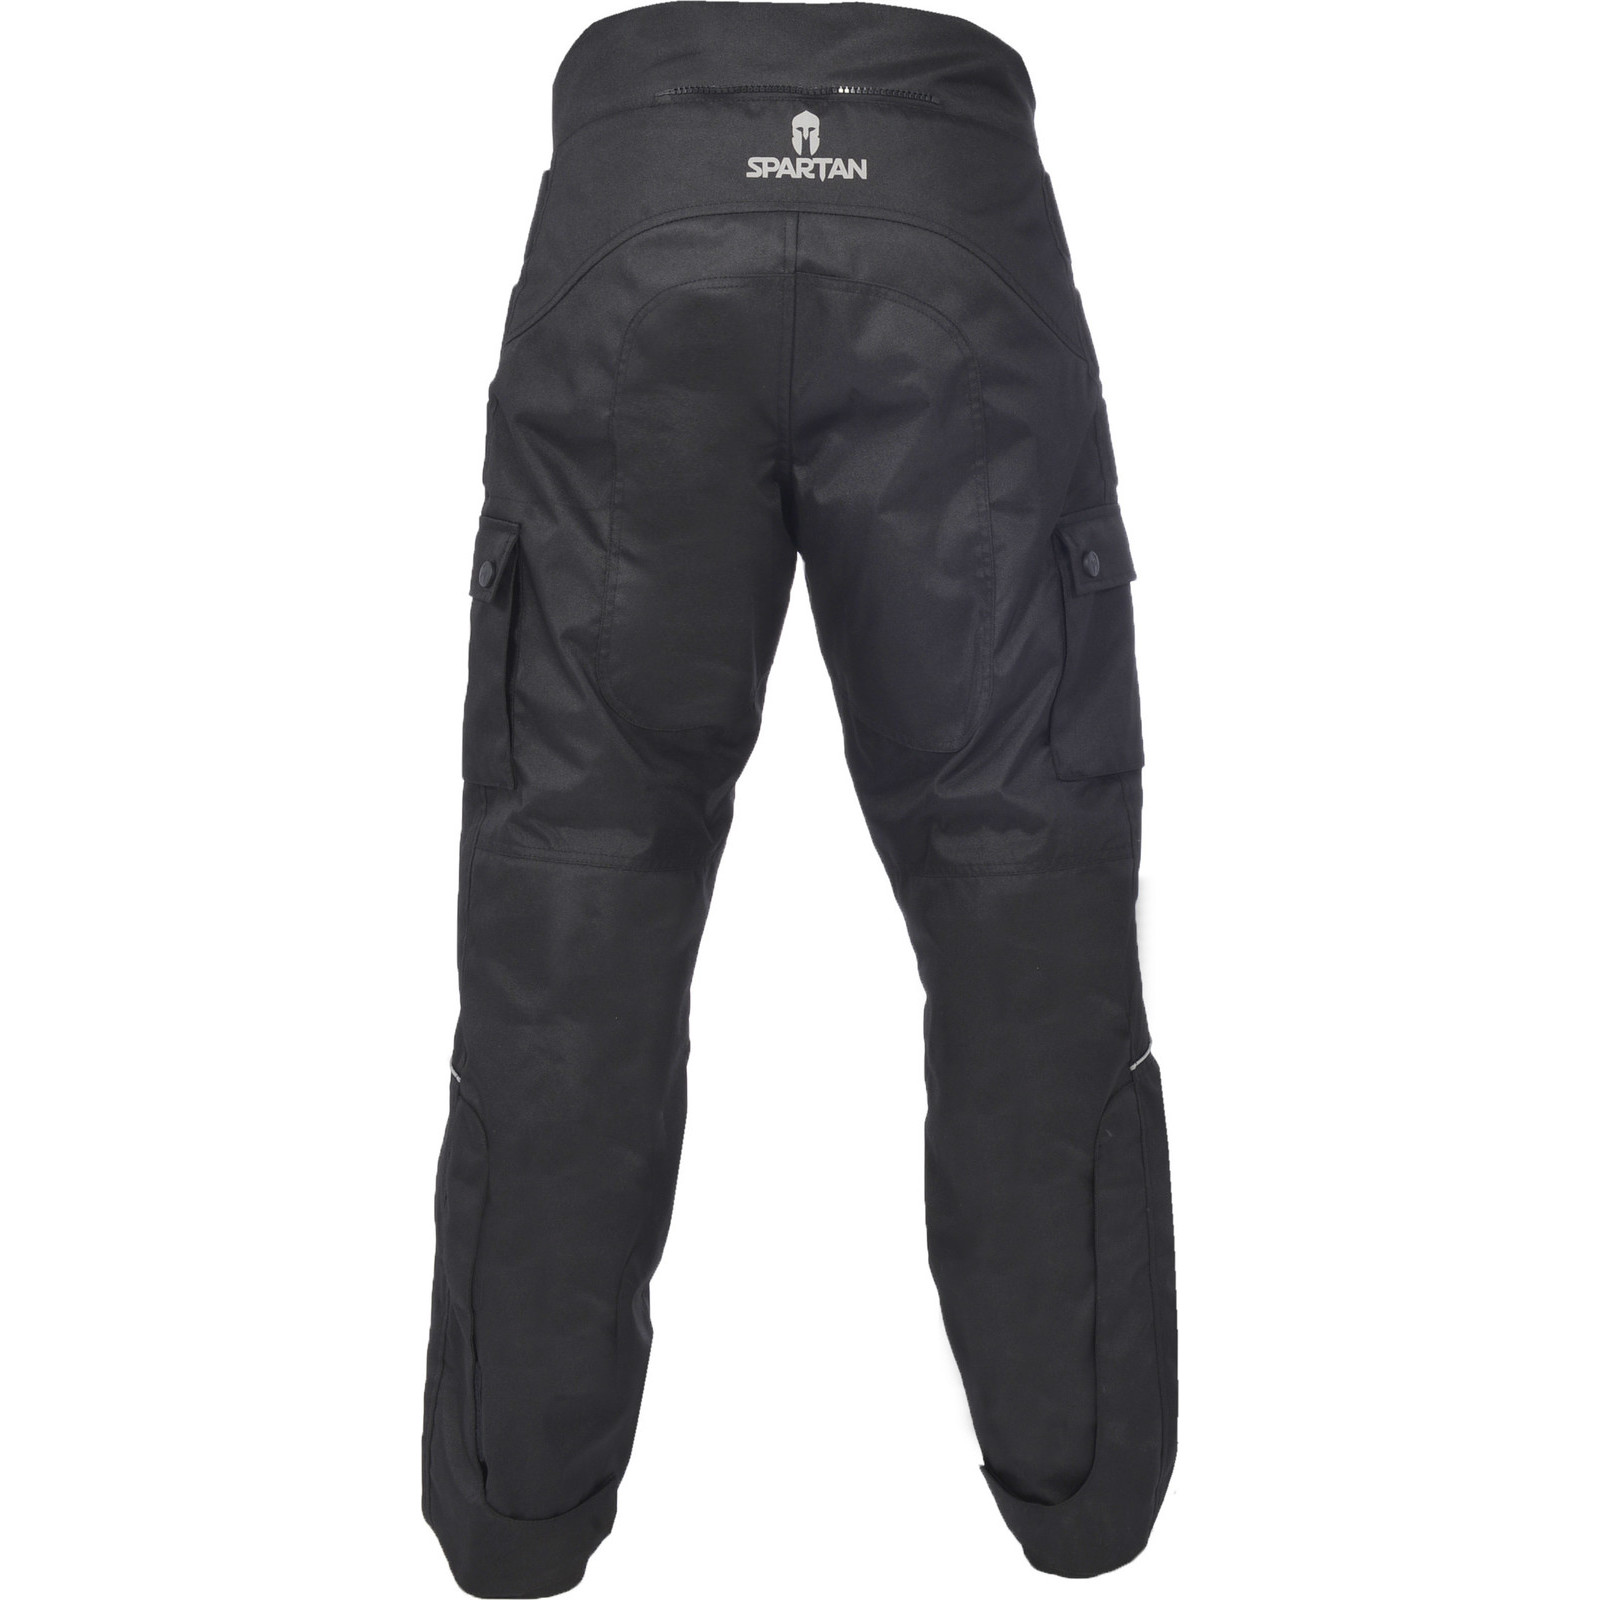 Oxford Spartan Motorcycle Trousers